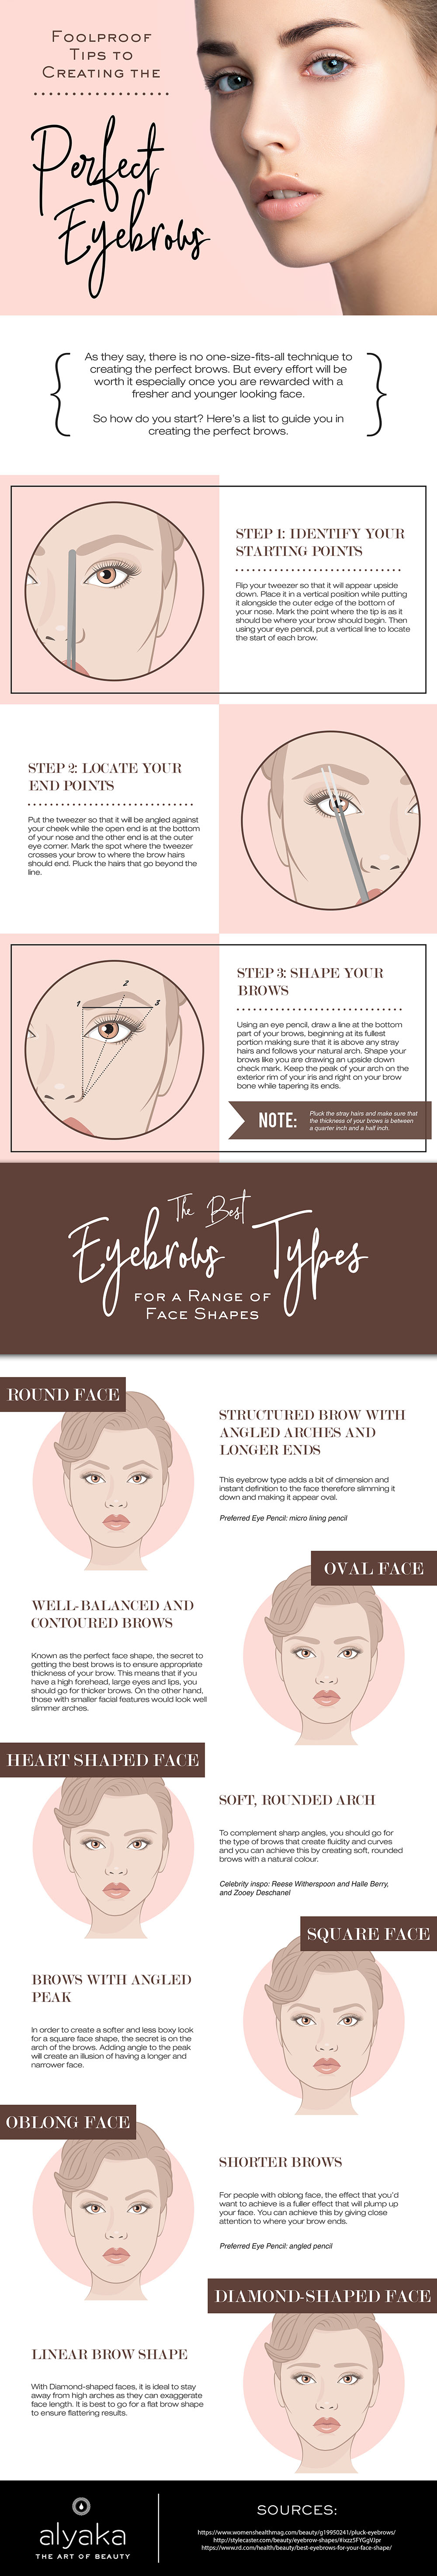 The Best Eyebrow Types And Shapes To Flatter A Range Of Face Shapes